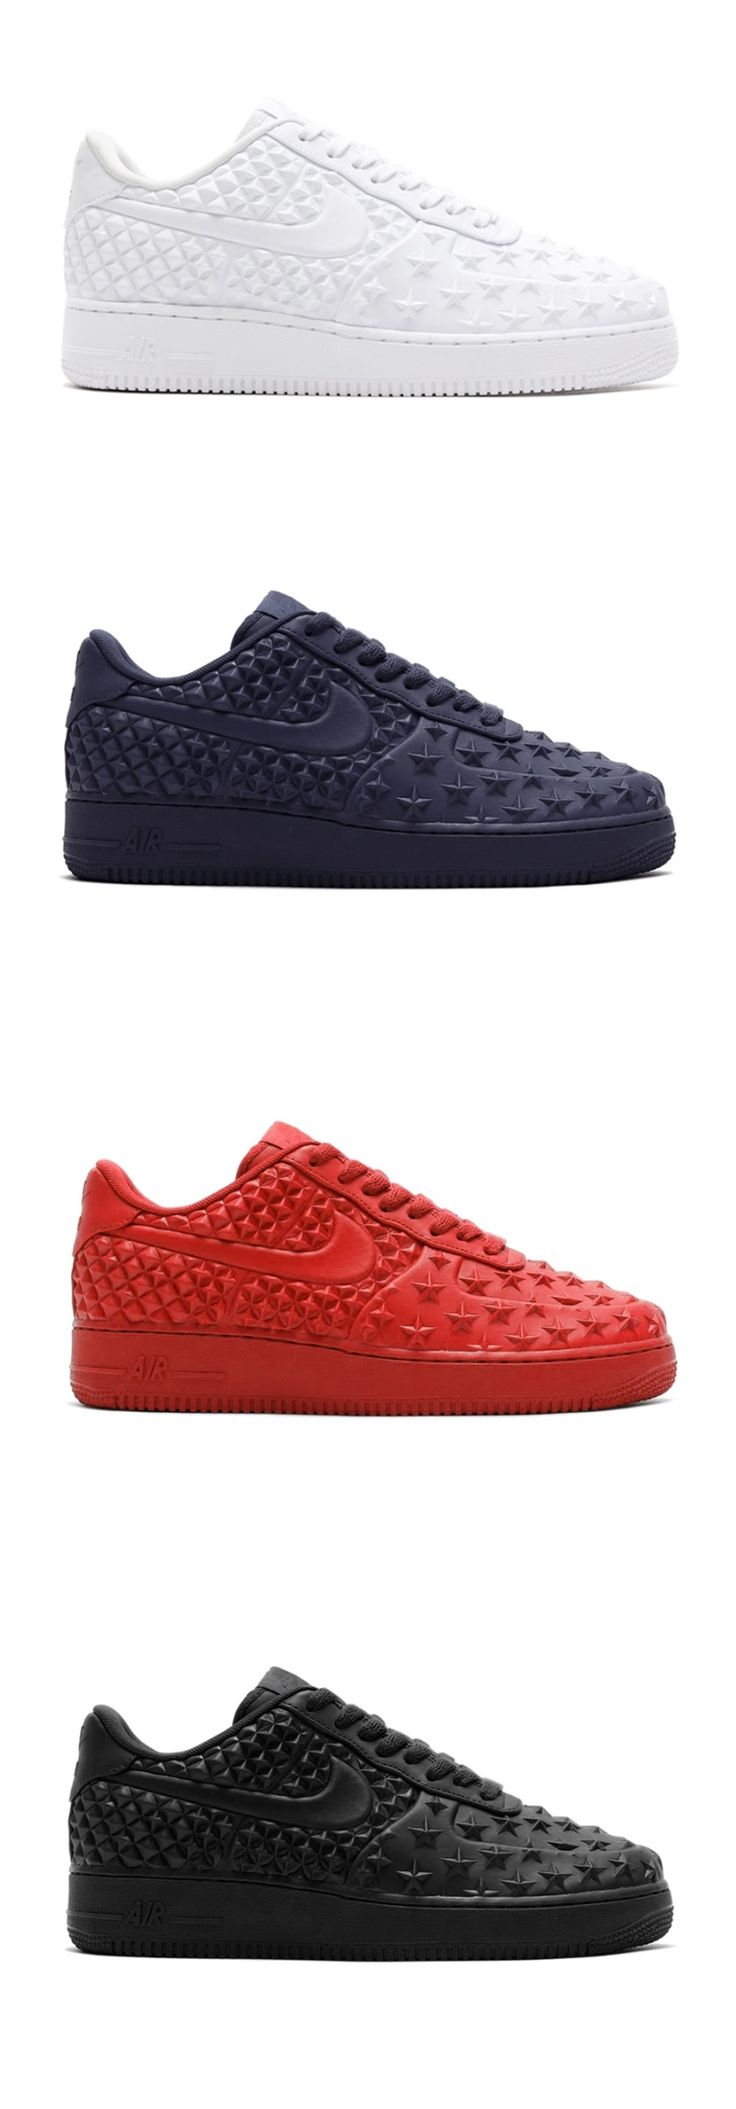 half off 196b0 0f79b Nike Air Force 1 LV8 VT Star Pack